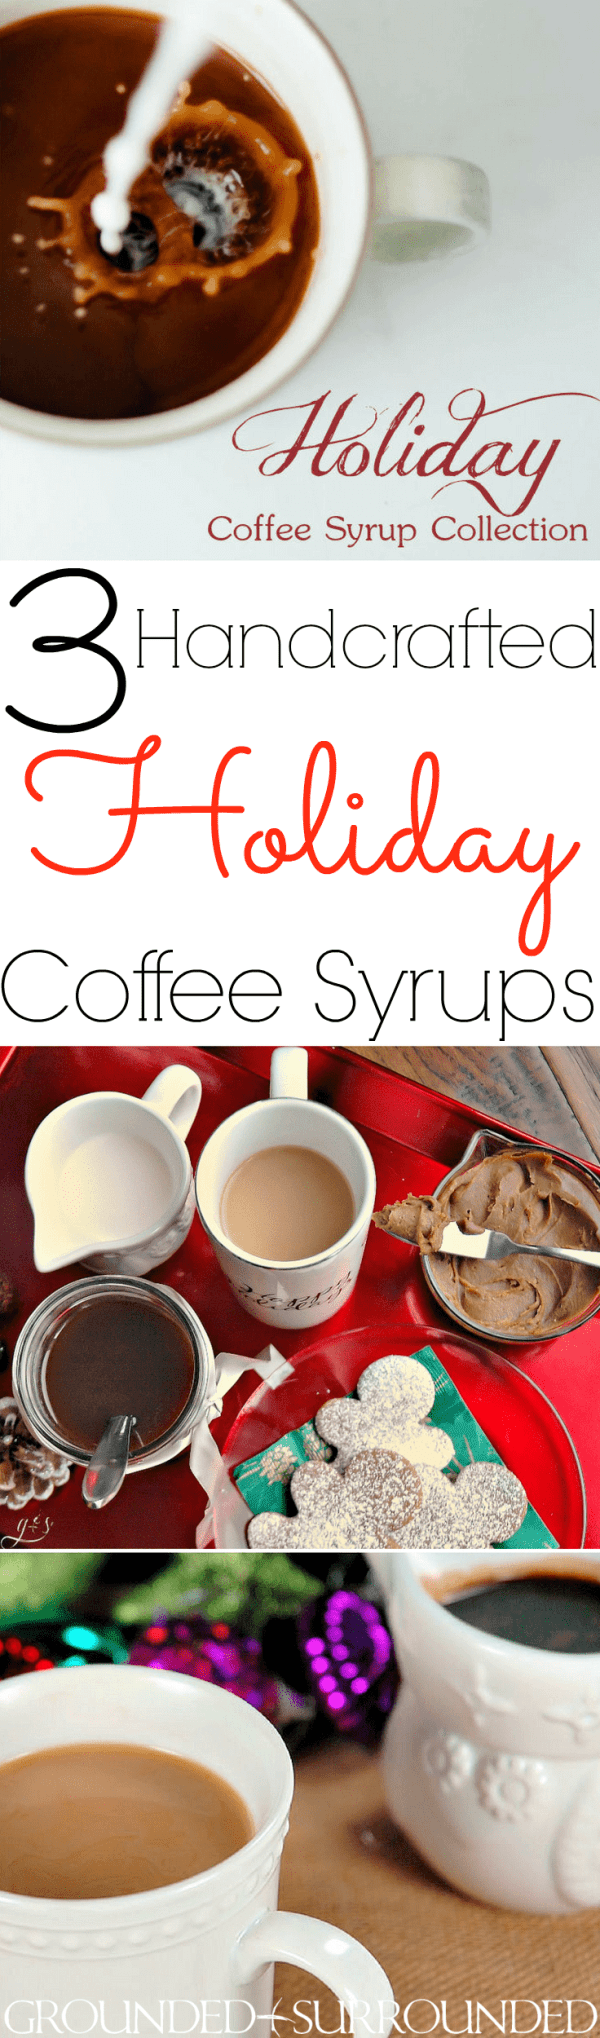 "3 Homemade Holiday Coffee Syrups | I started making these easy and healthy (""healthier"") flavored syrups (gingerbread, peppermint mocha, vanilla) years ago. How to Use: Add 1-2 Tbsp to coffee with 1-2 Tbsp half and half or almond milk. These homemade syrups recipe can be used for other things as well like flavoring hot cocoa, pouring over ice cream, or as a dessert topping. You will love these Starbucks copycats and never go back to store brands like Torani (no hard feelings!) again!"